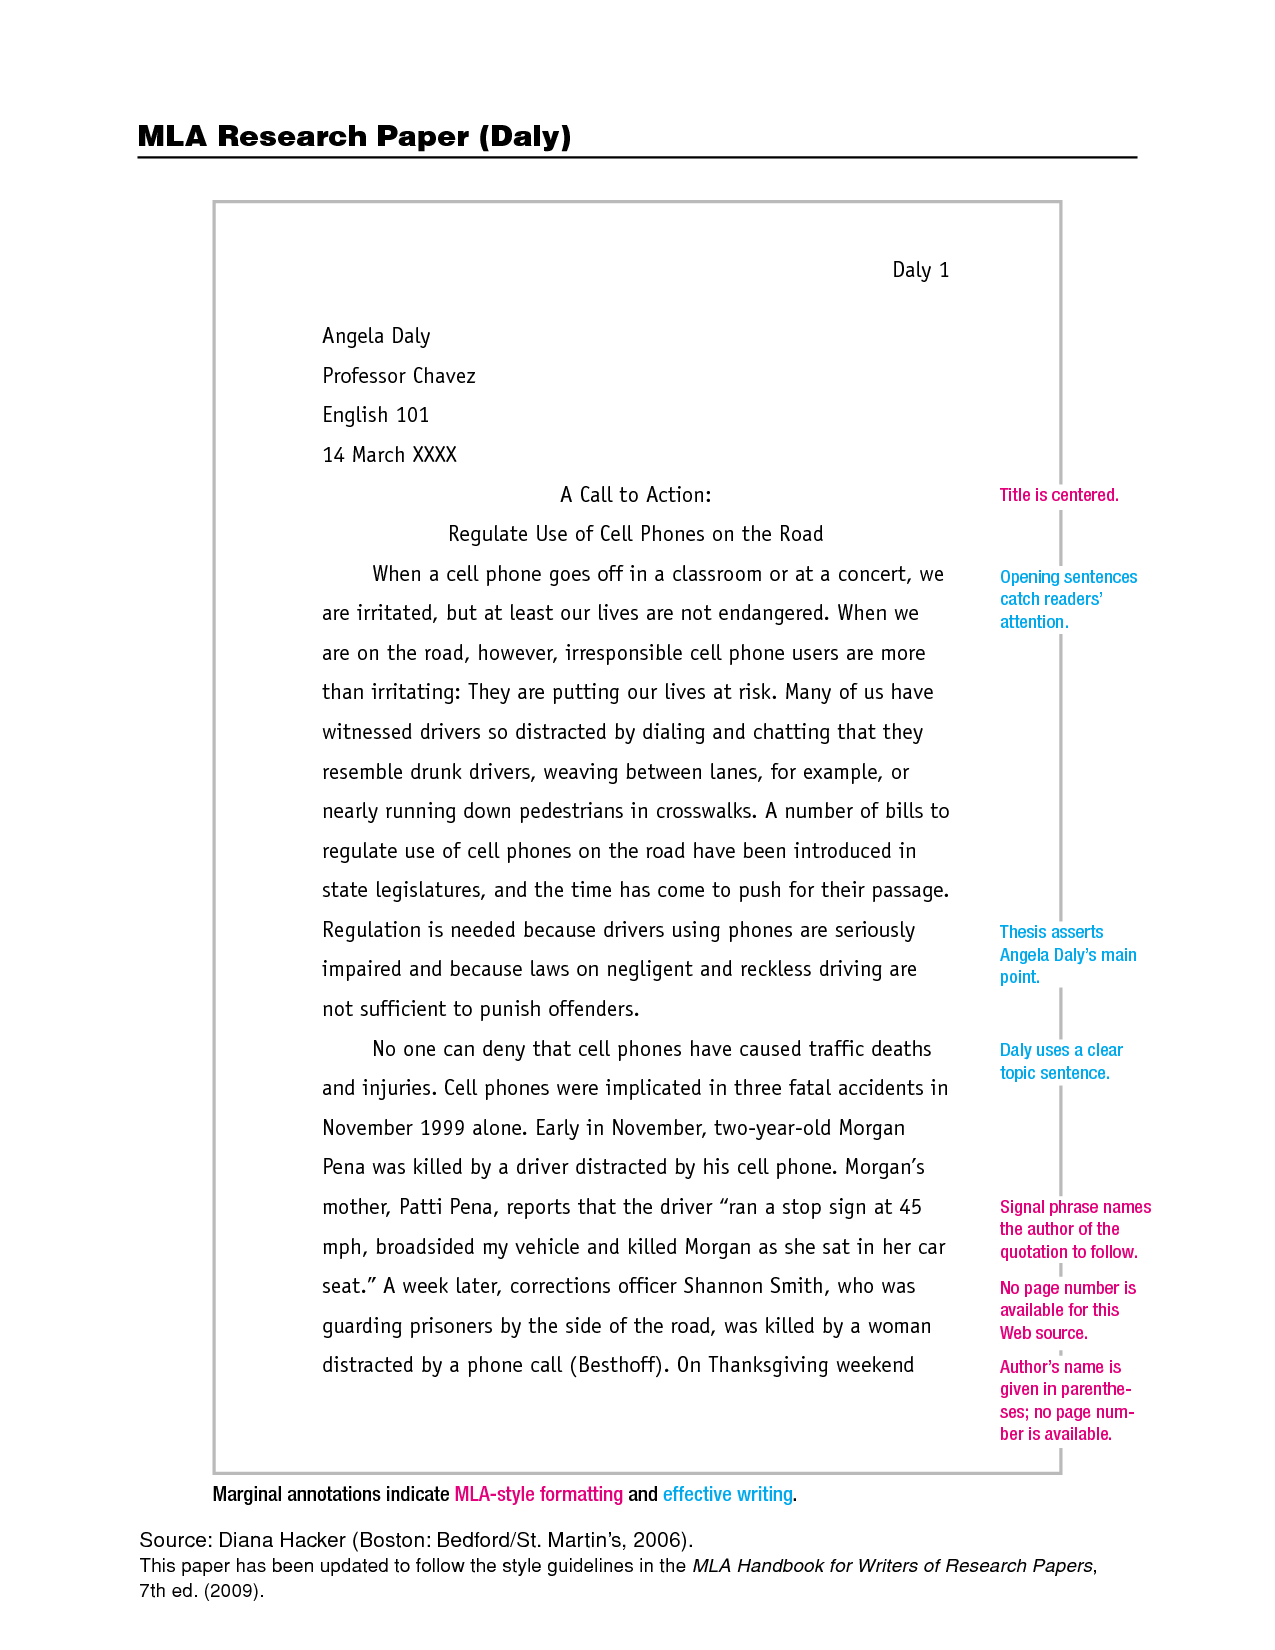 Beau MLA Format Research Papers | MLA Research Paper (Daly)